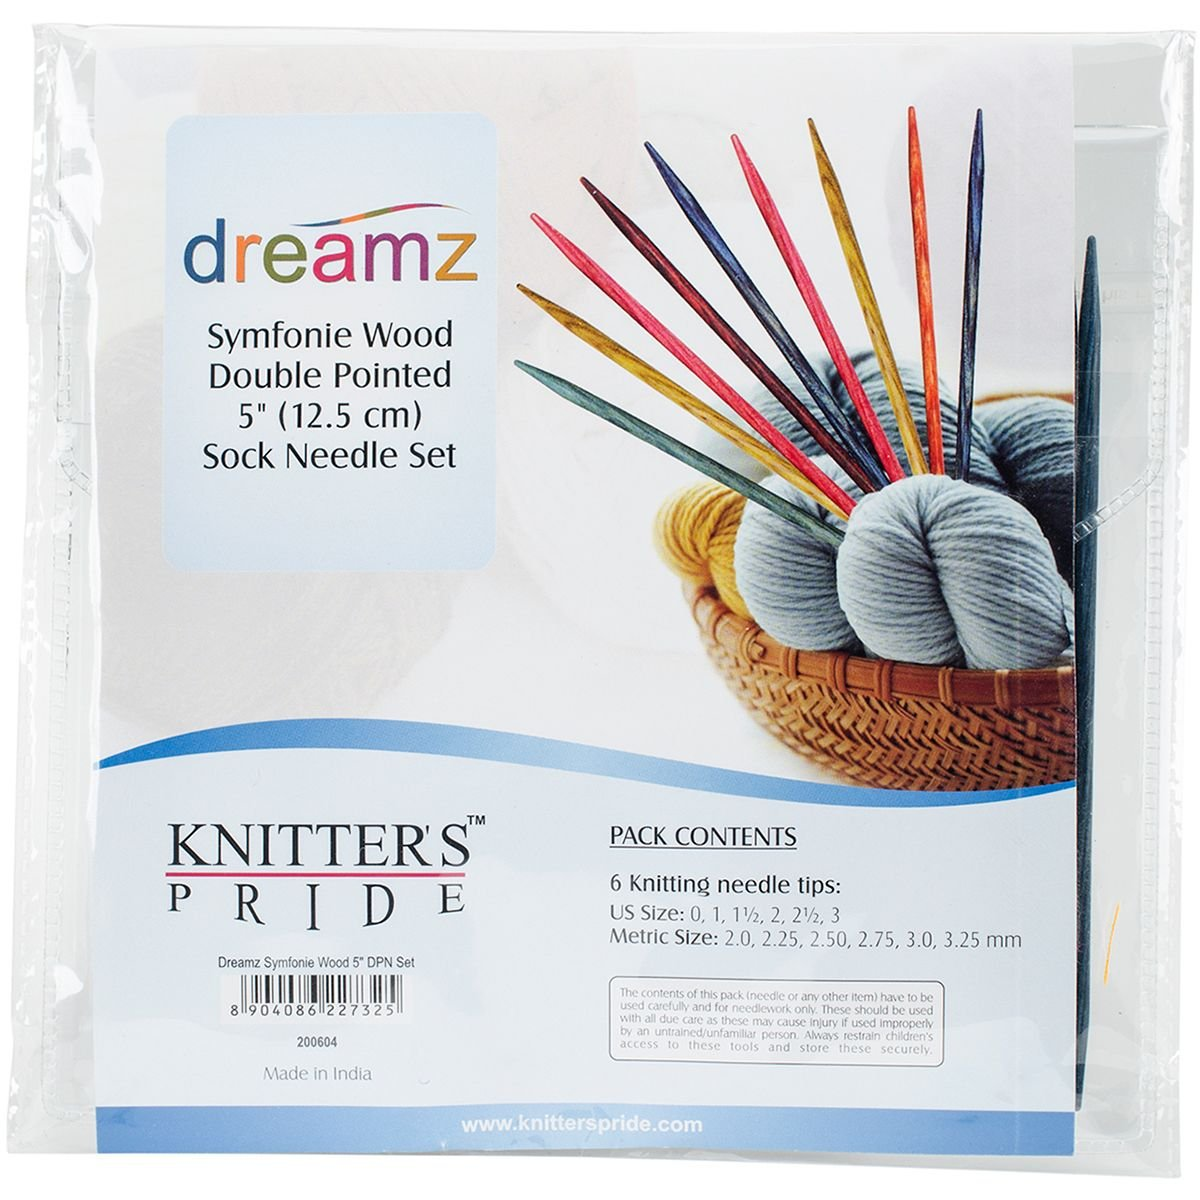 Dreamz DPN Sets